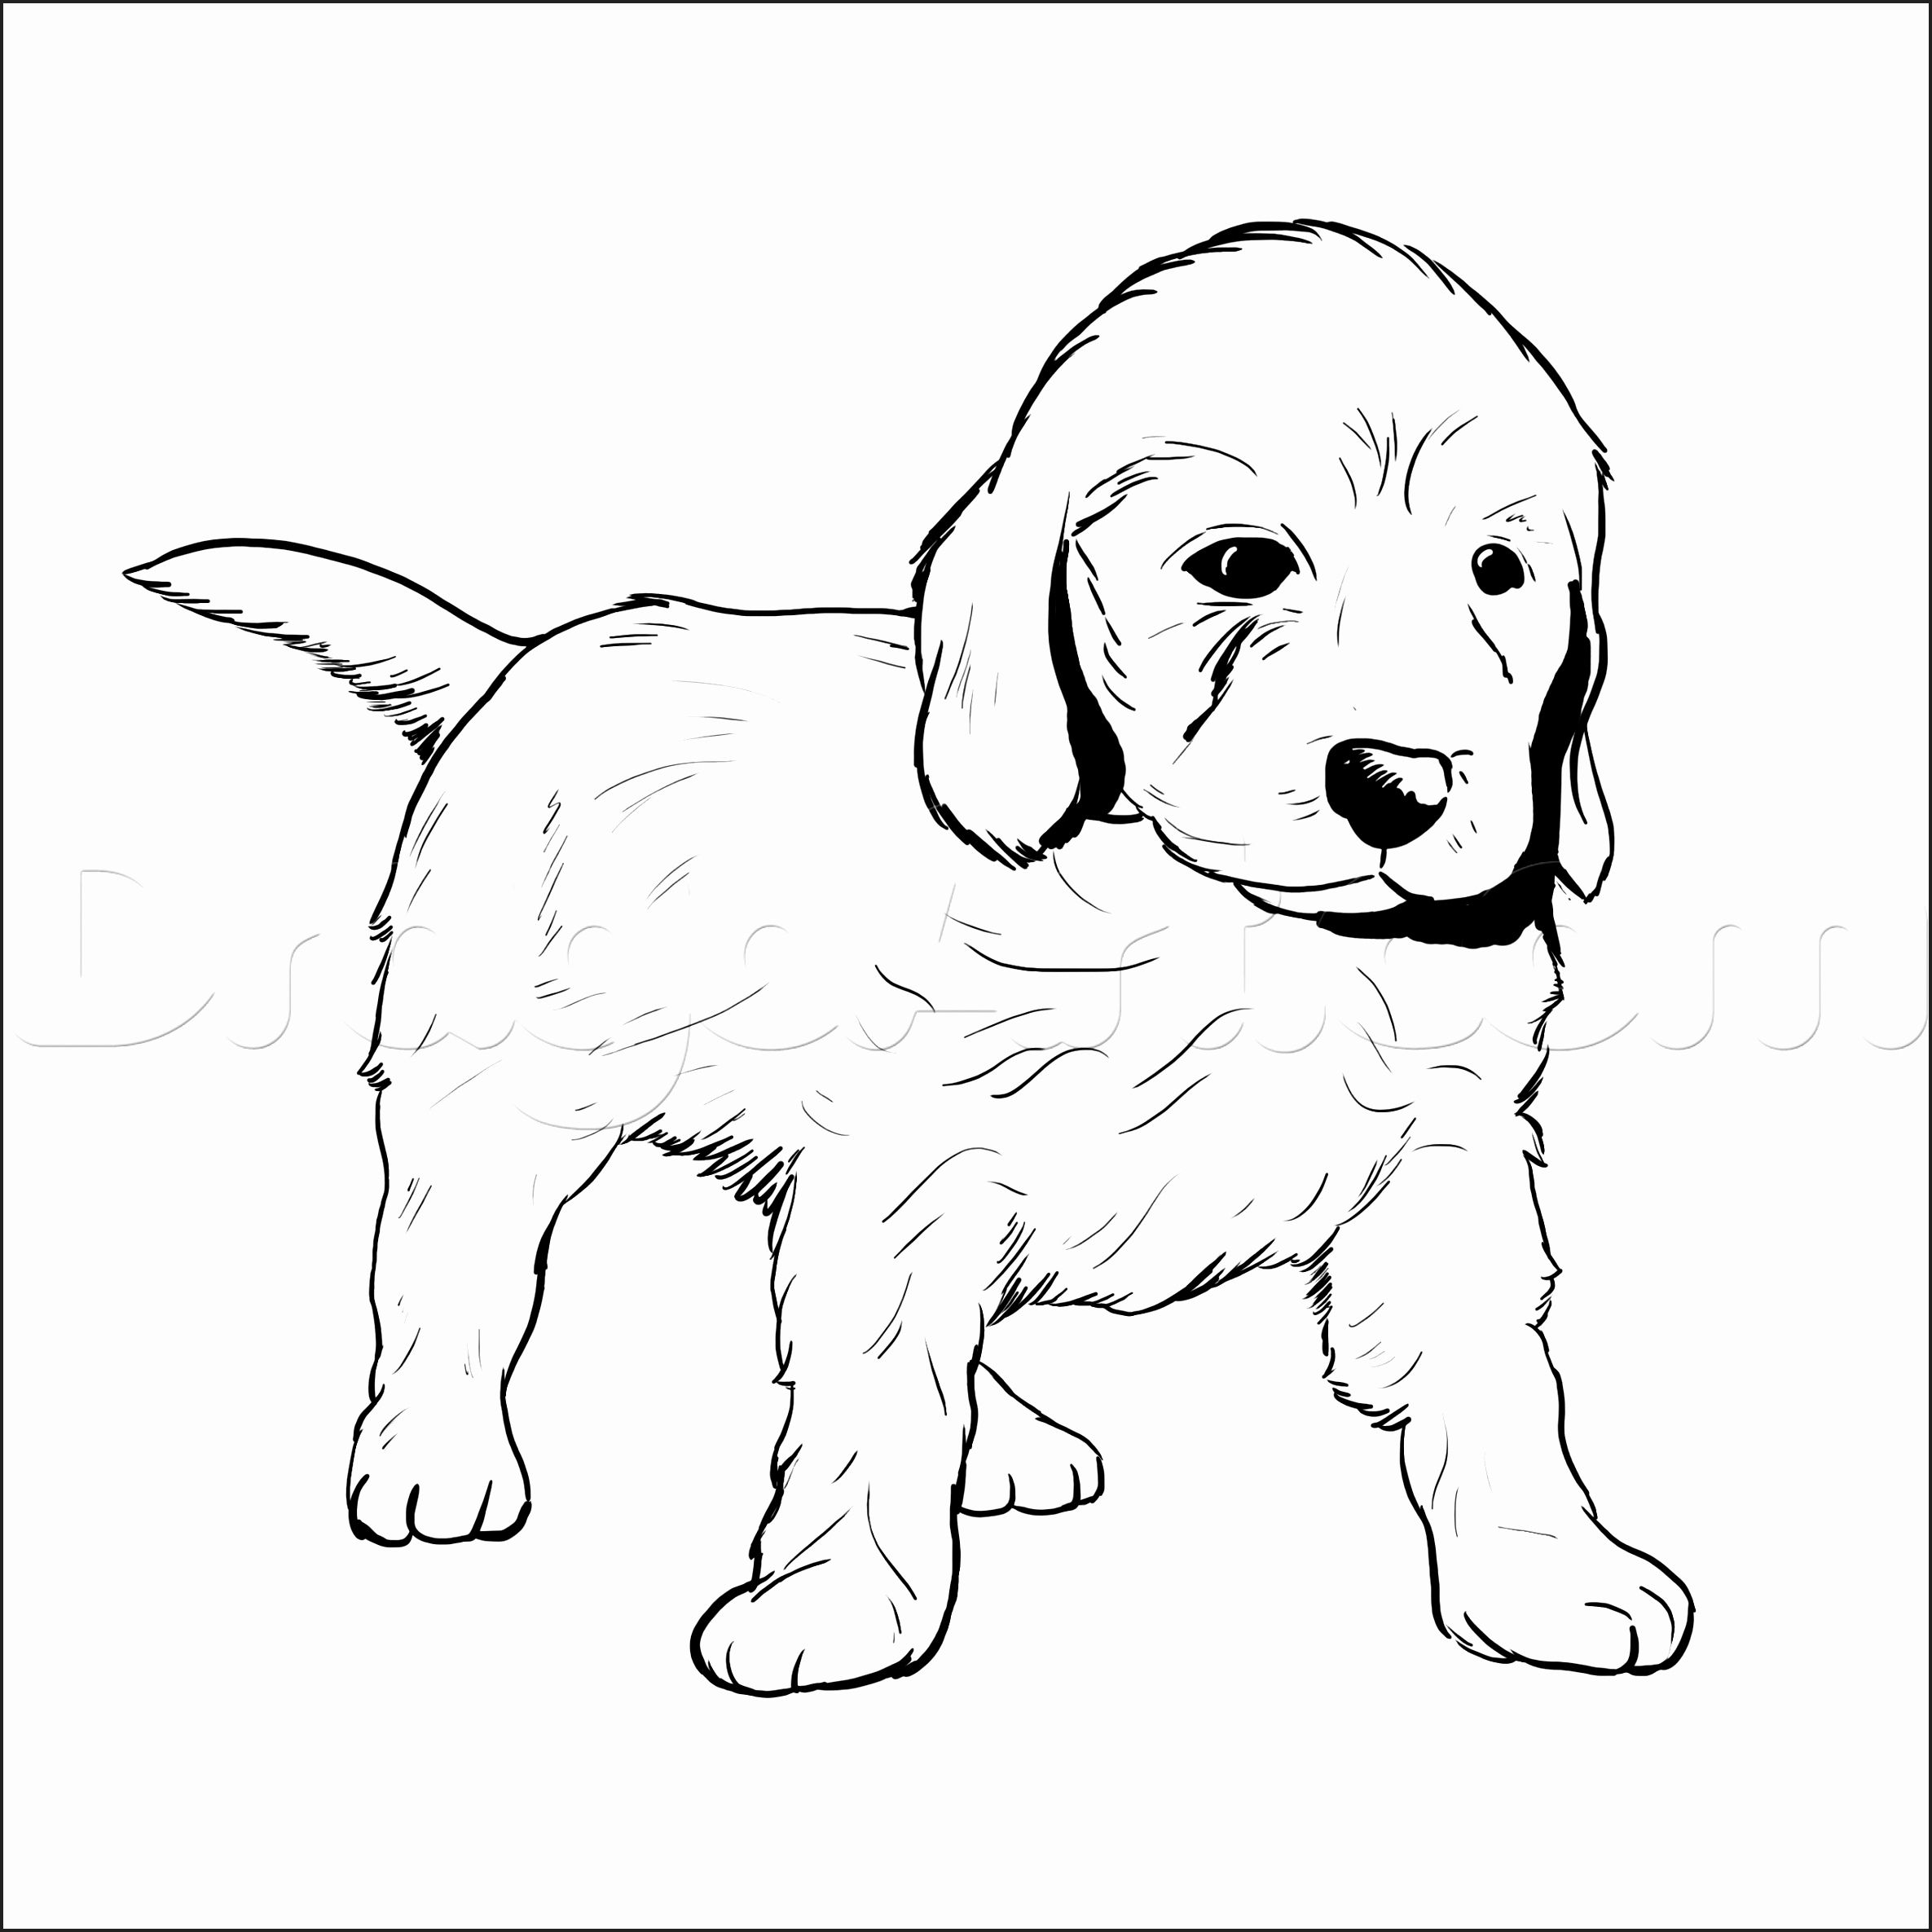 Puppy Coloring Pages Printable Pet Store Page Free Dog Pals Sled Ideas Golden Retriever Wild West Donosaur C Dog Coloring Page Puppy Coloring Pages Dog Drawing